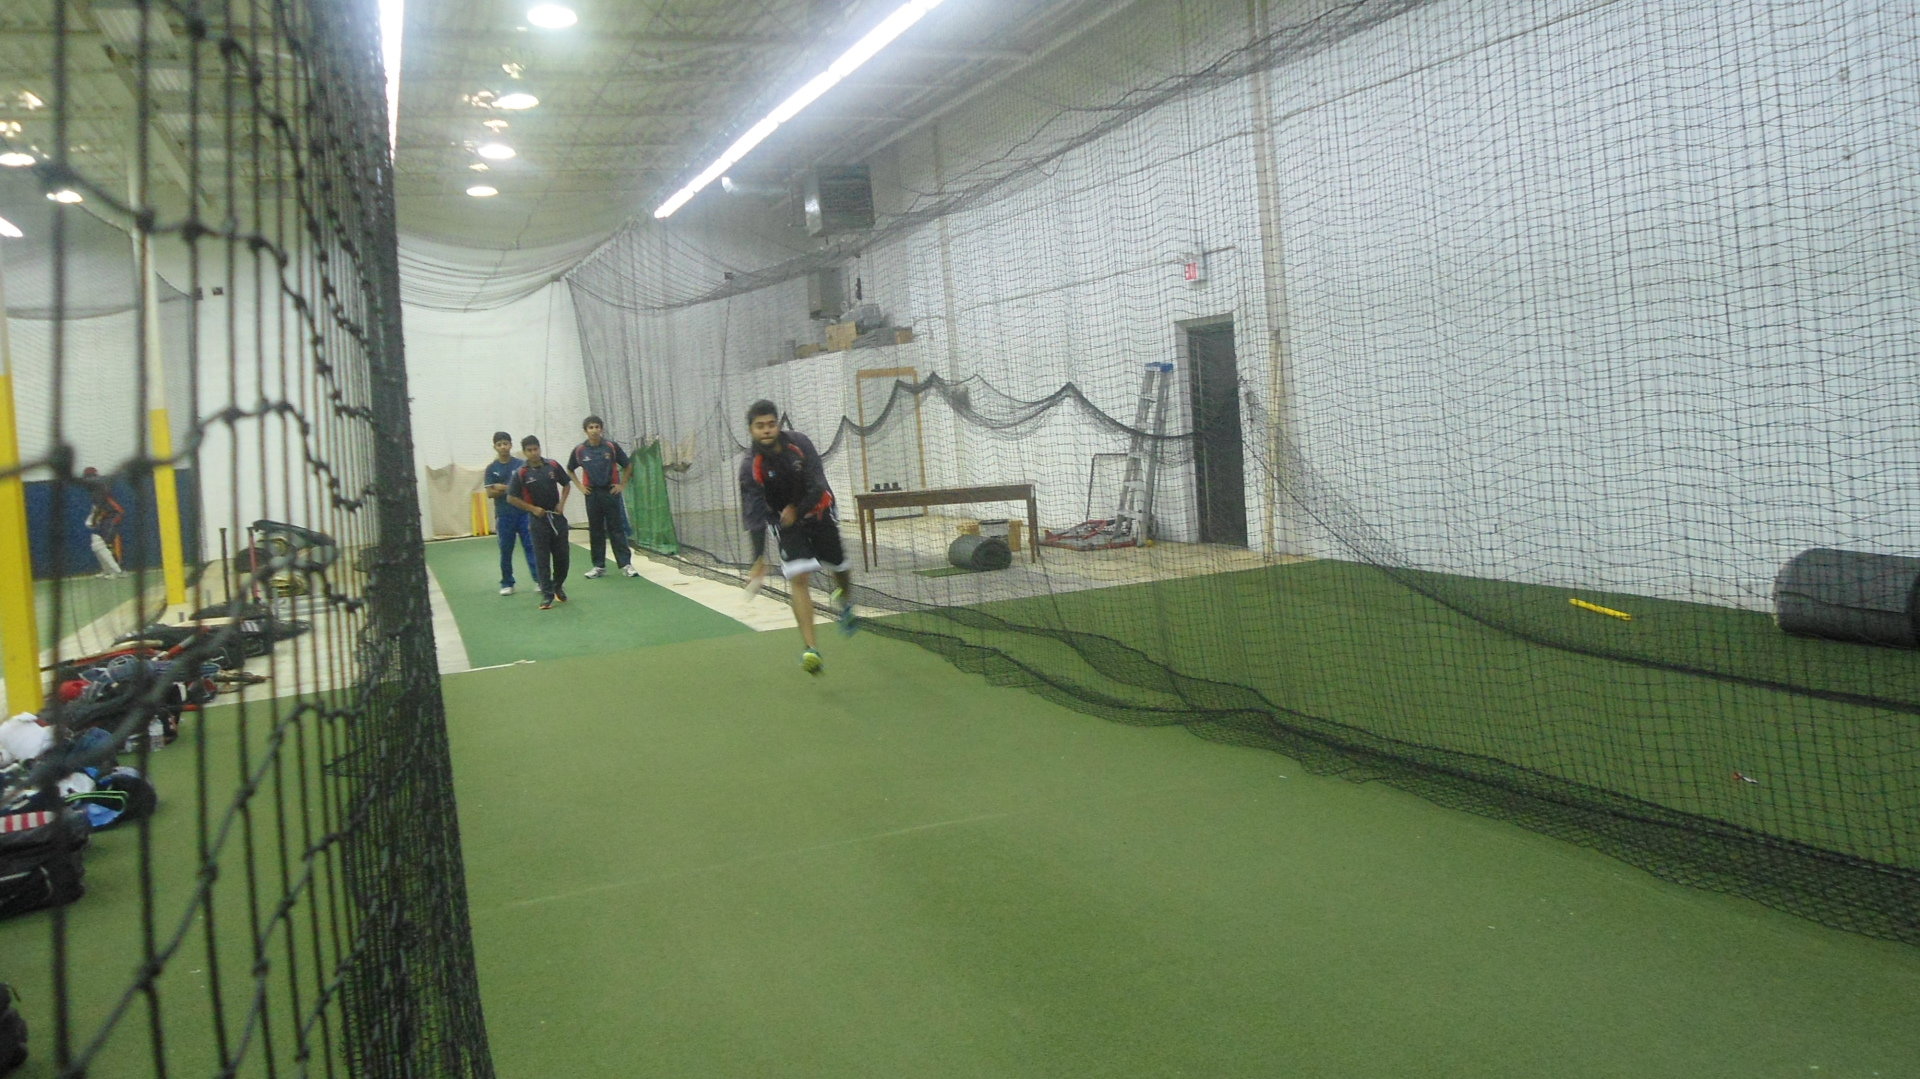 A place to learn and play cricket...